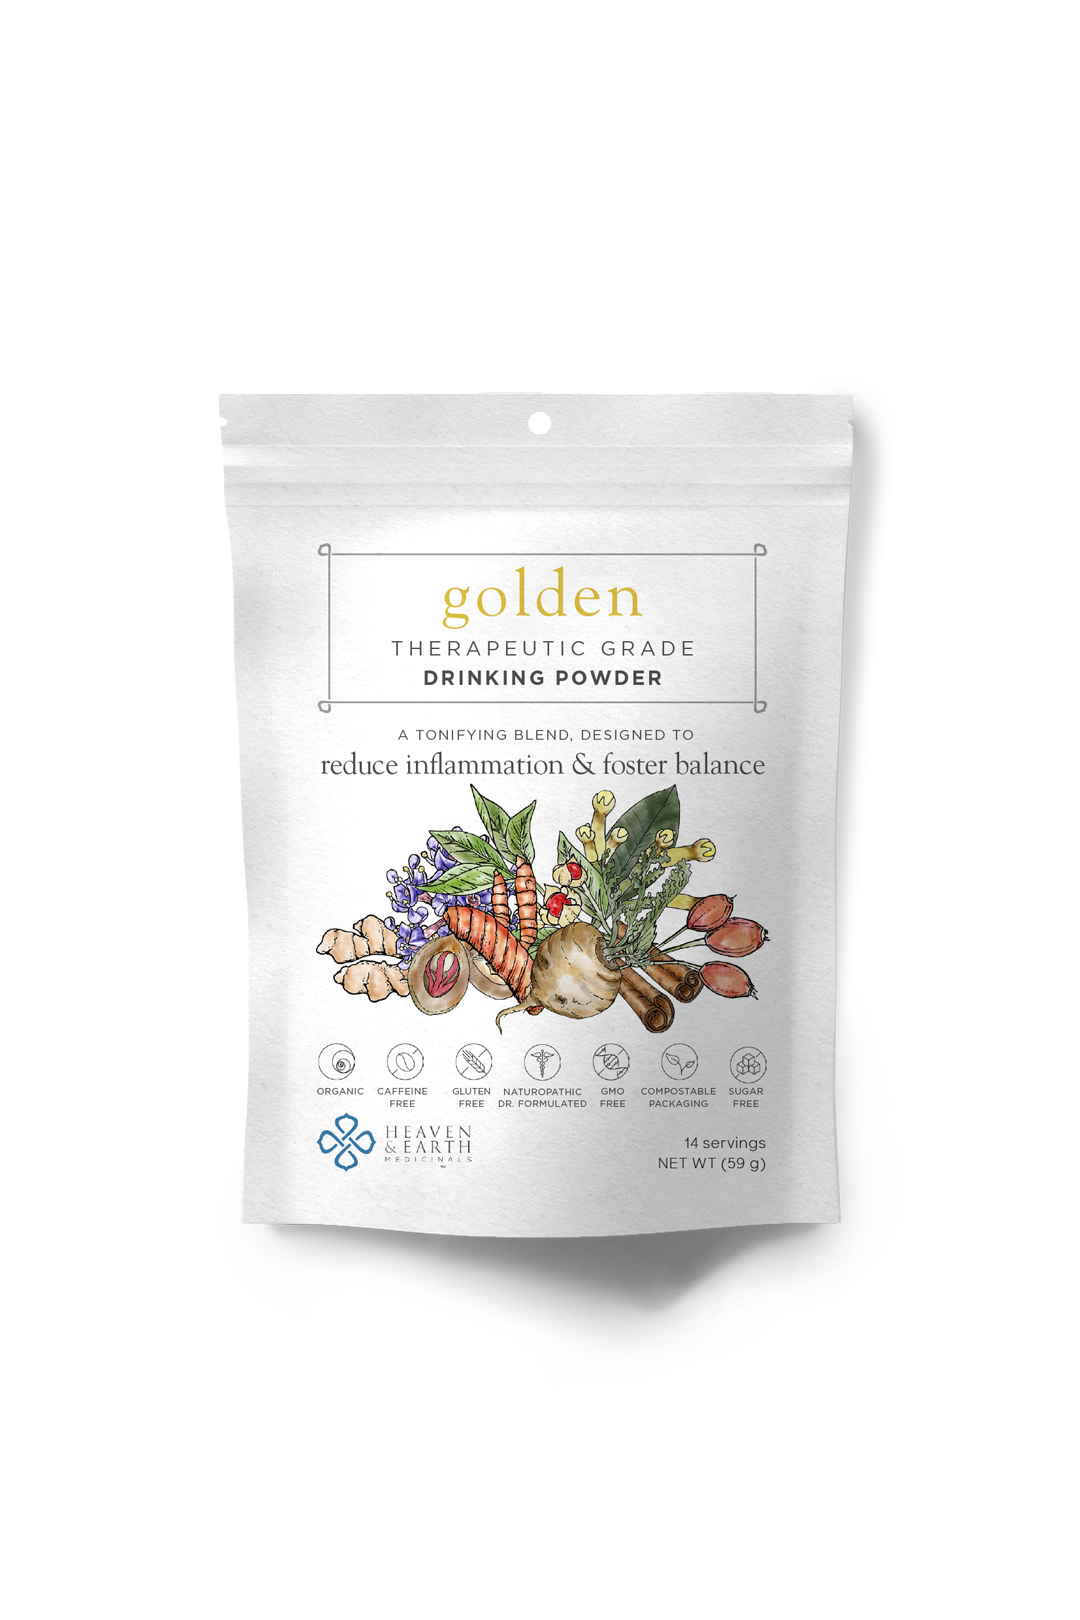 golden drinking powder